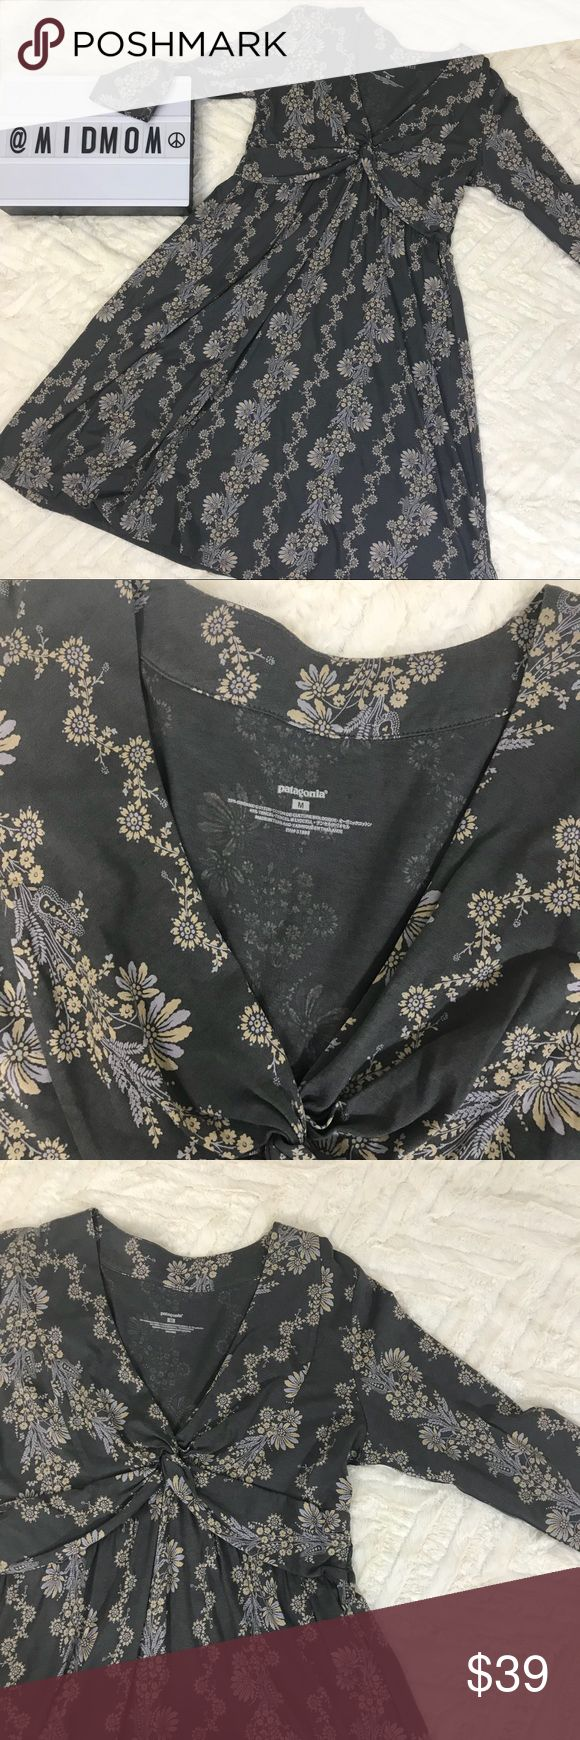 "Patagonia floral organic cotton long sleeve dress Patagonia dress with 3/4 length sleeves.  Excellent condition.  Measures 37"" long and 18"" armpit to armpit approximately Patagonia Dresses Midi"